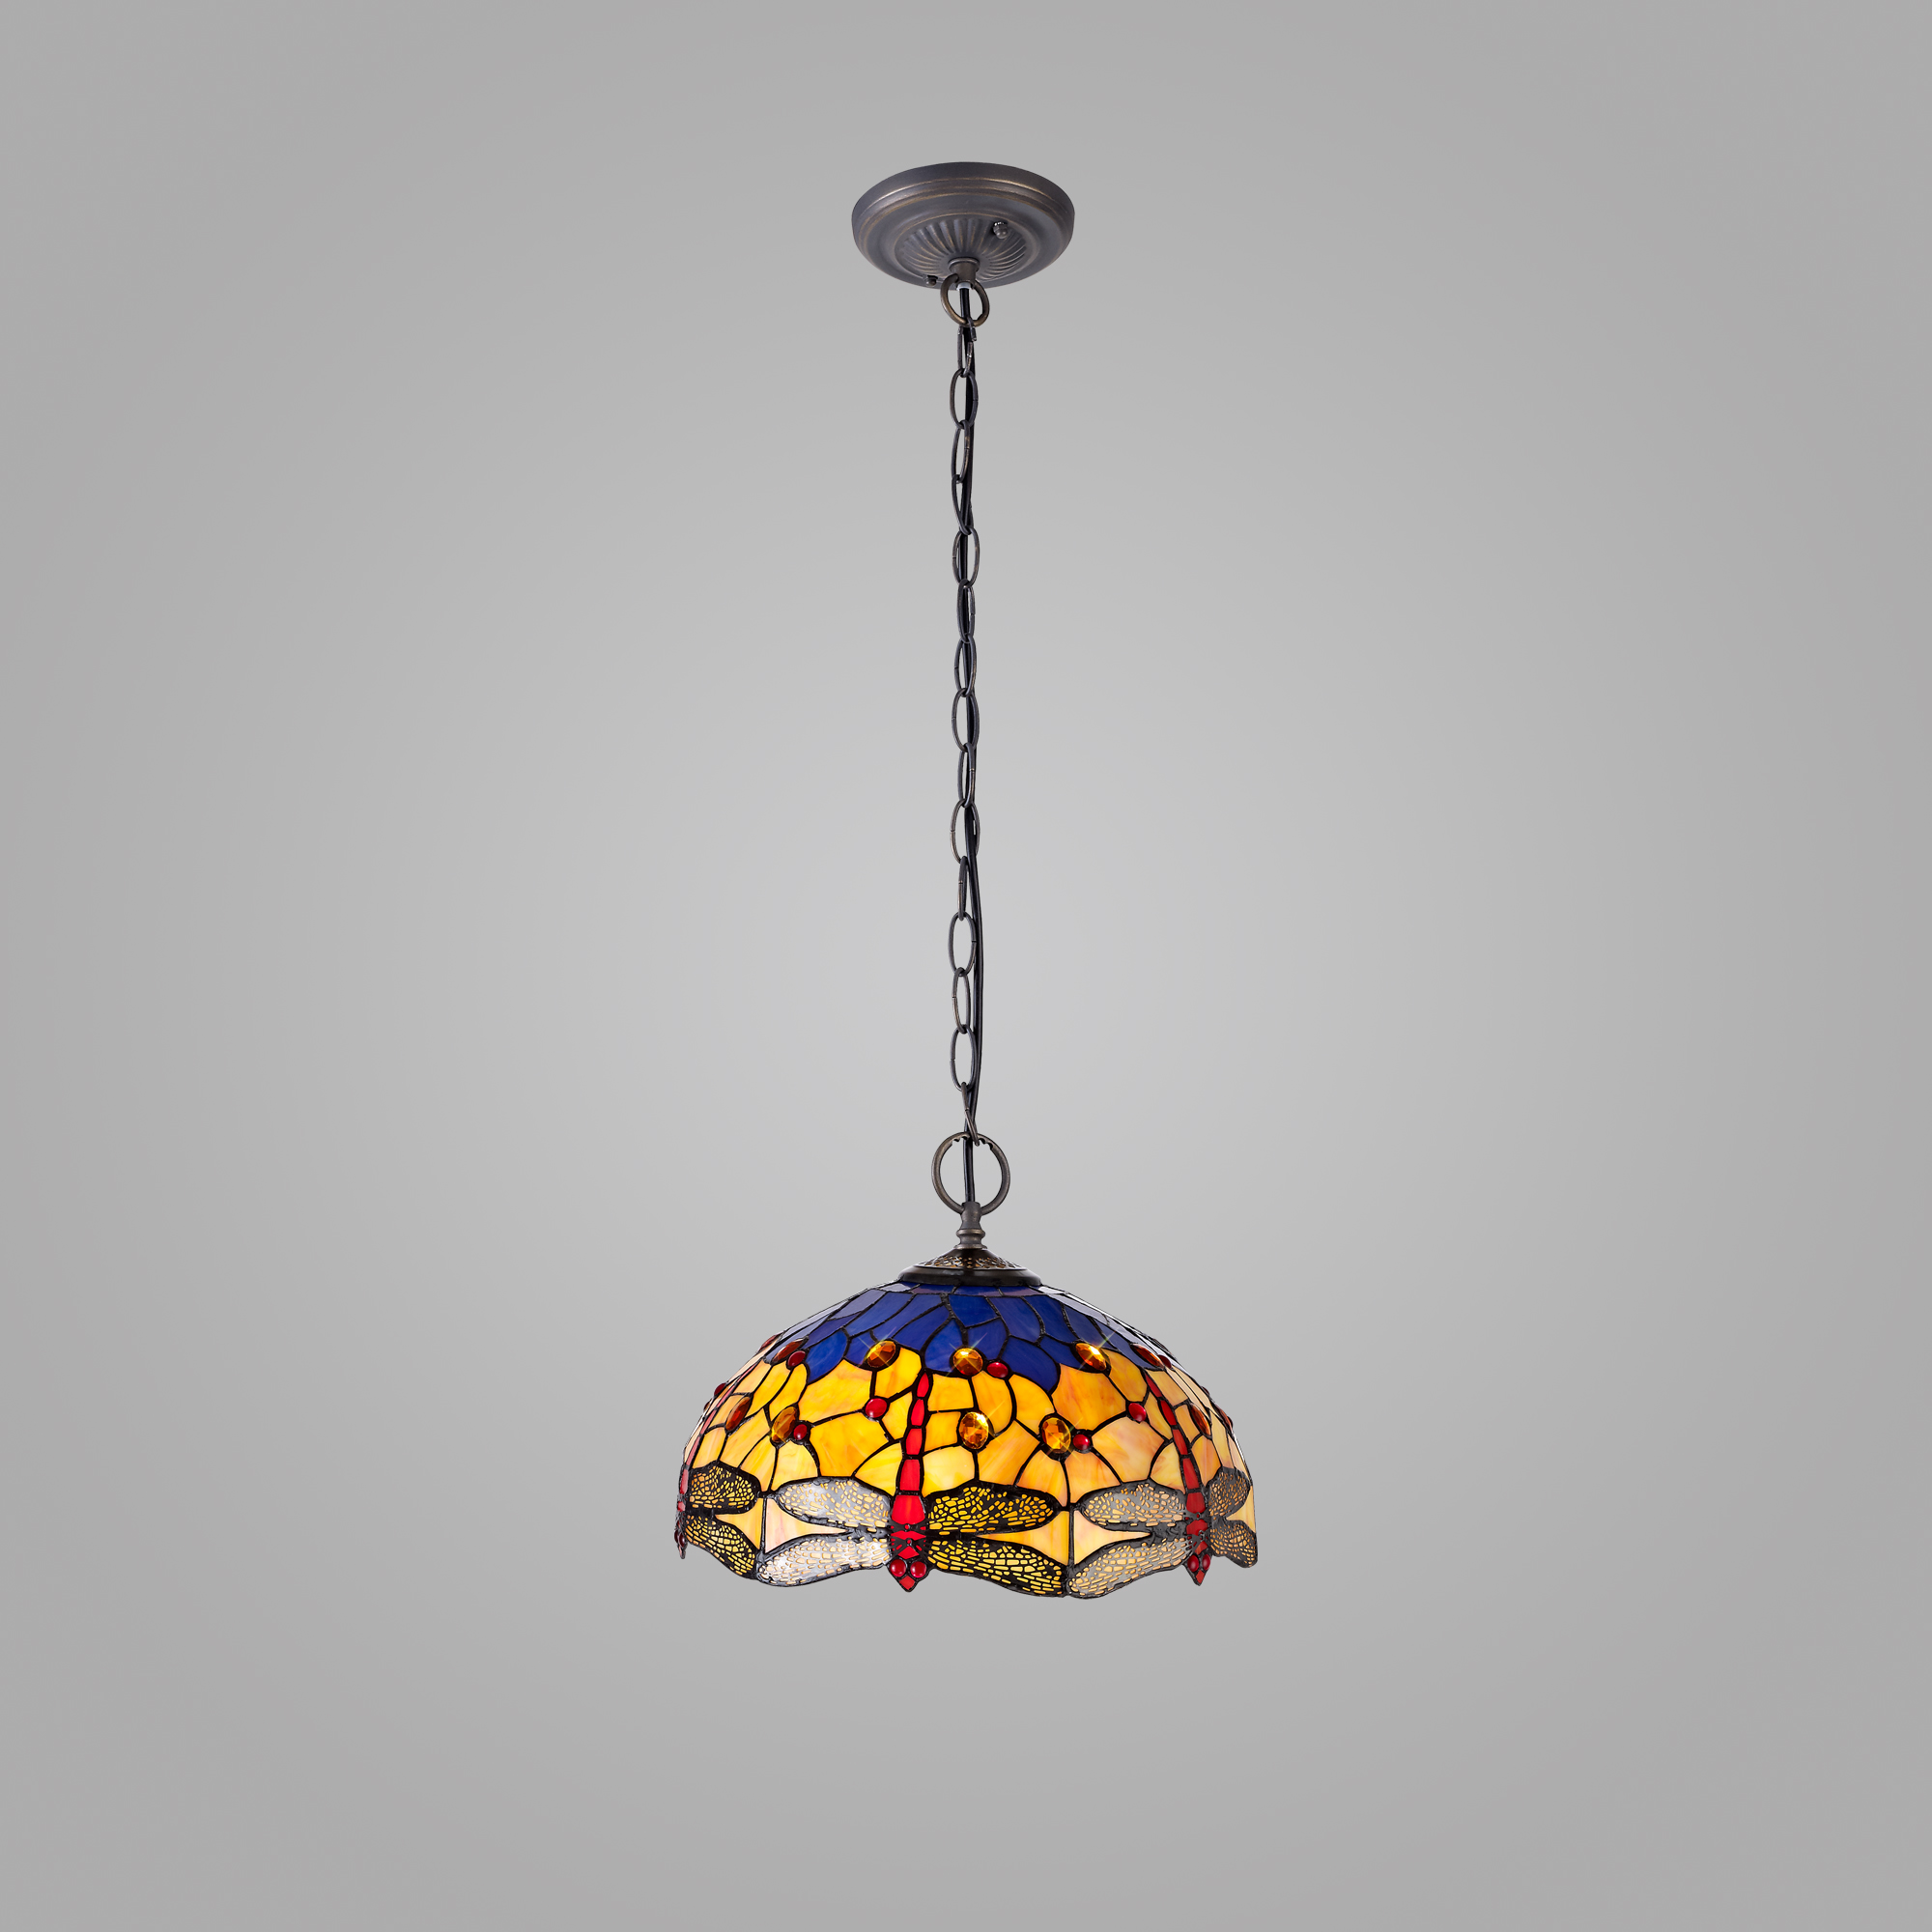 2 Light Downlighter Pendant E27 With 40cm Tiffany Shade